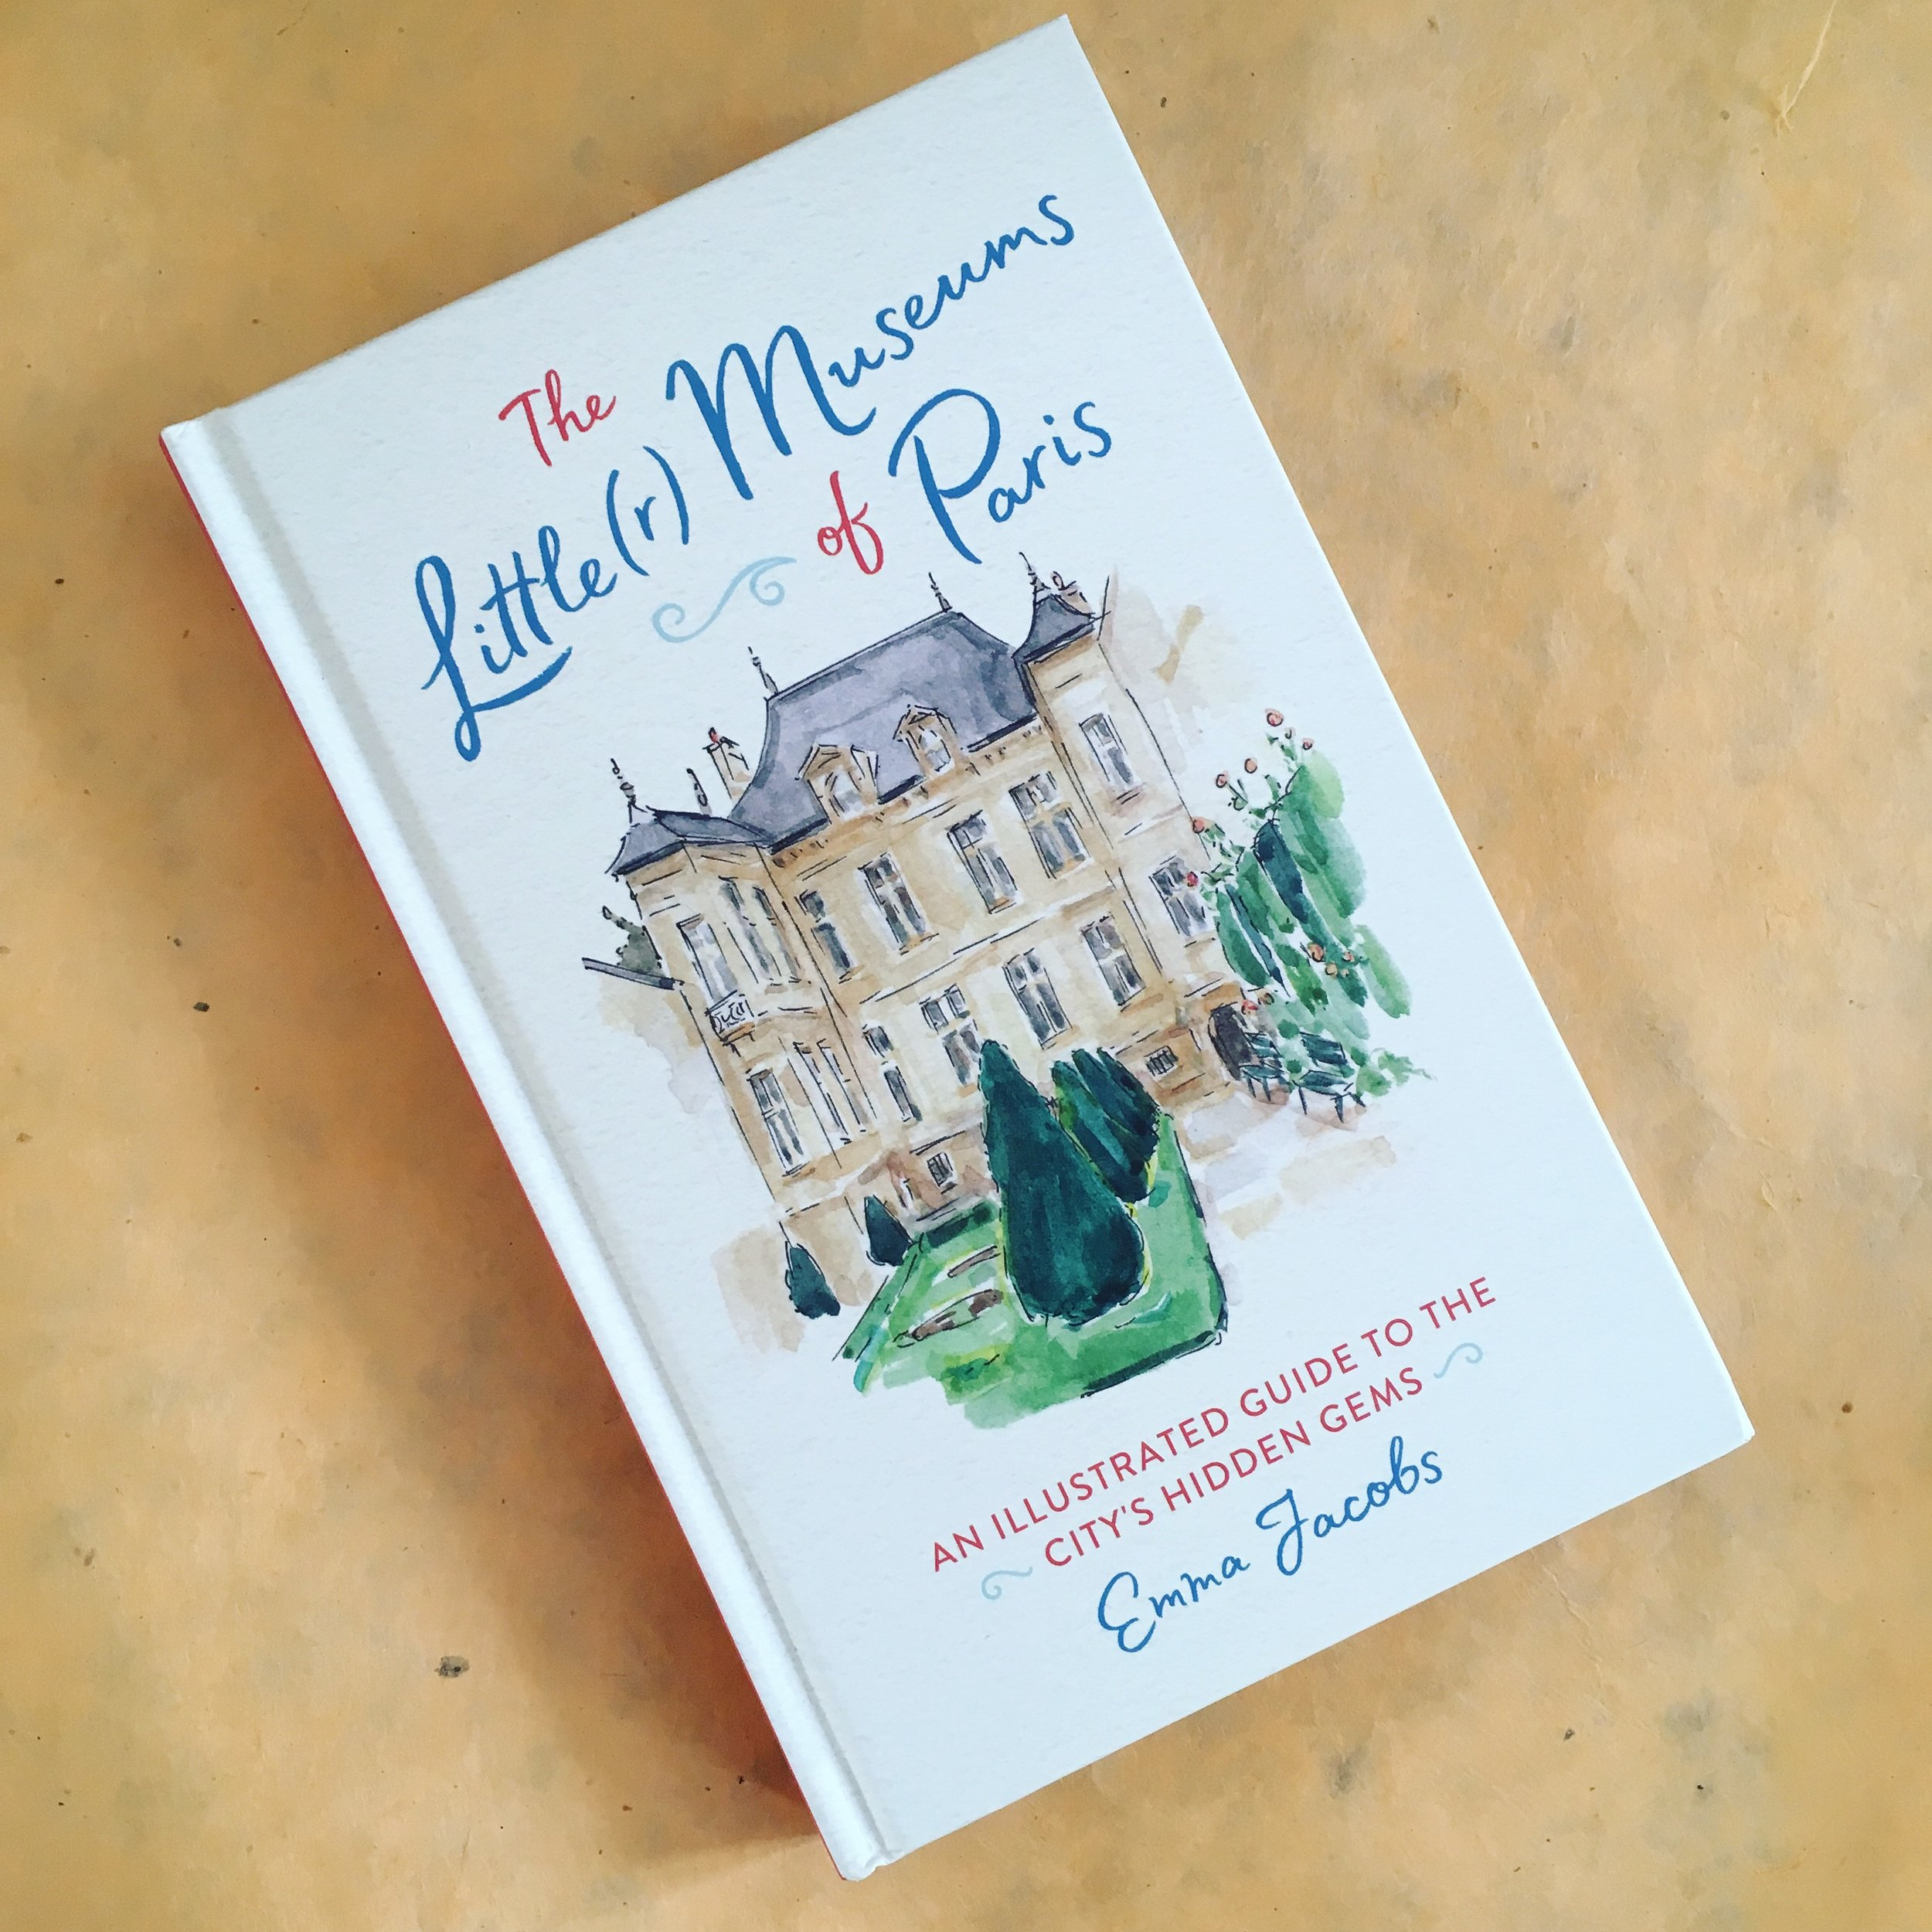 The Little(r) Museums of Paris (Running Press, 2019)